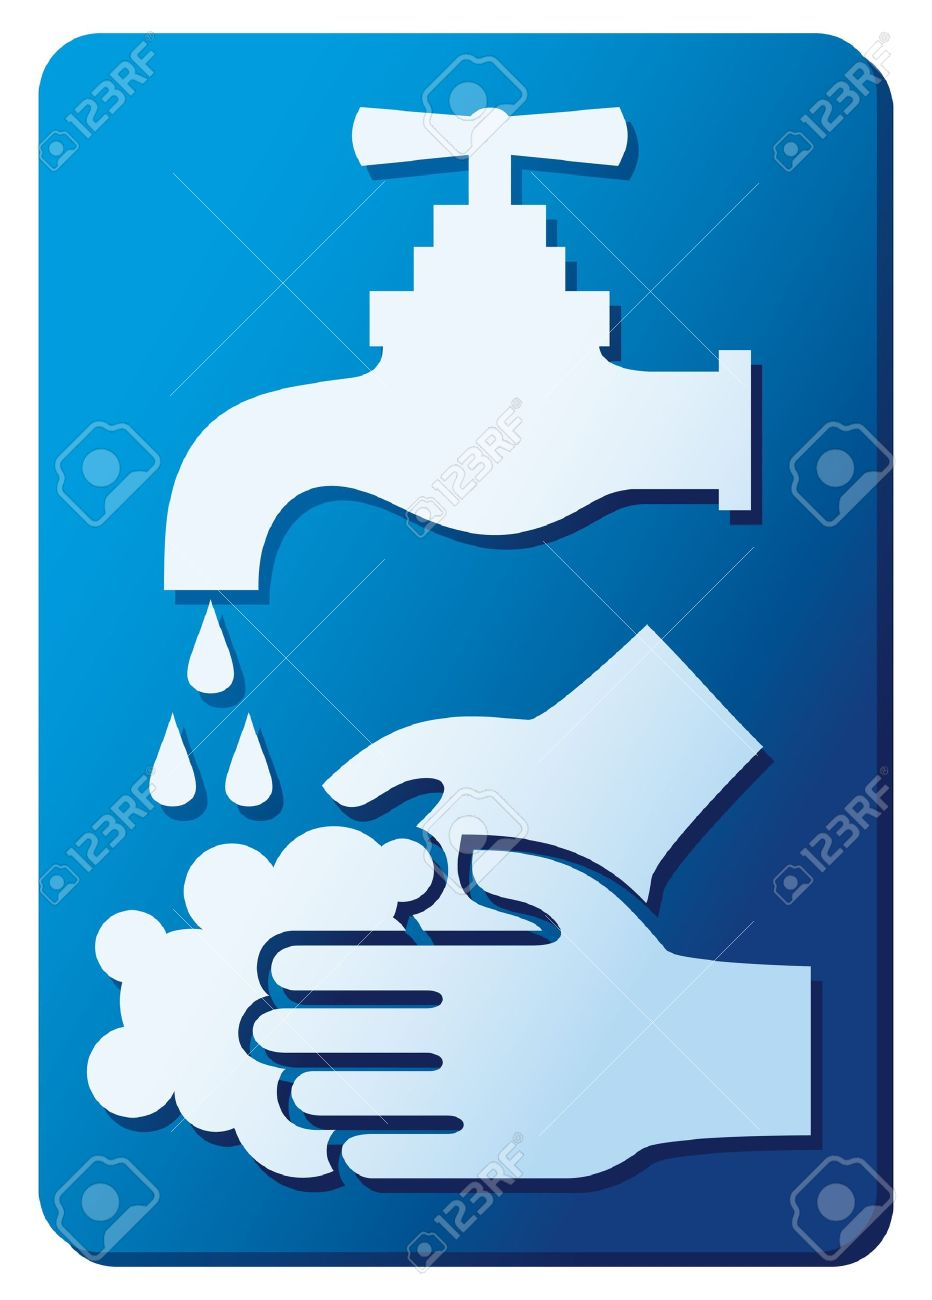 88 Please Wash Your Hands Icon Stock Vector Illustration And Royalty